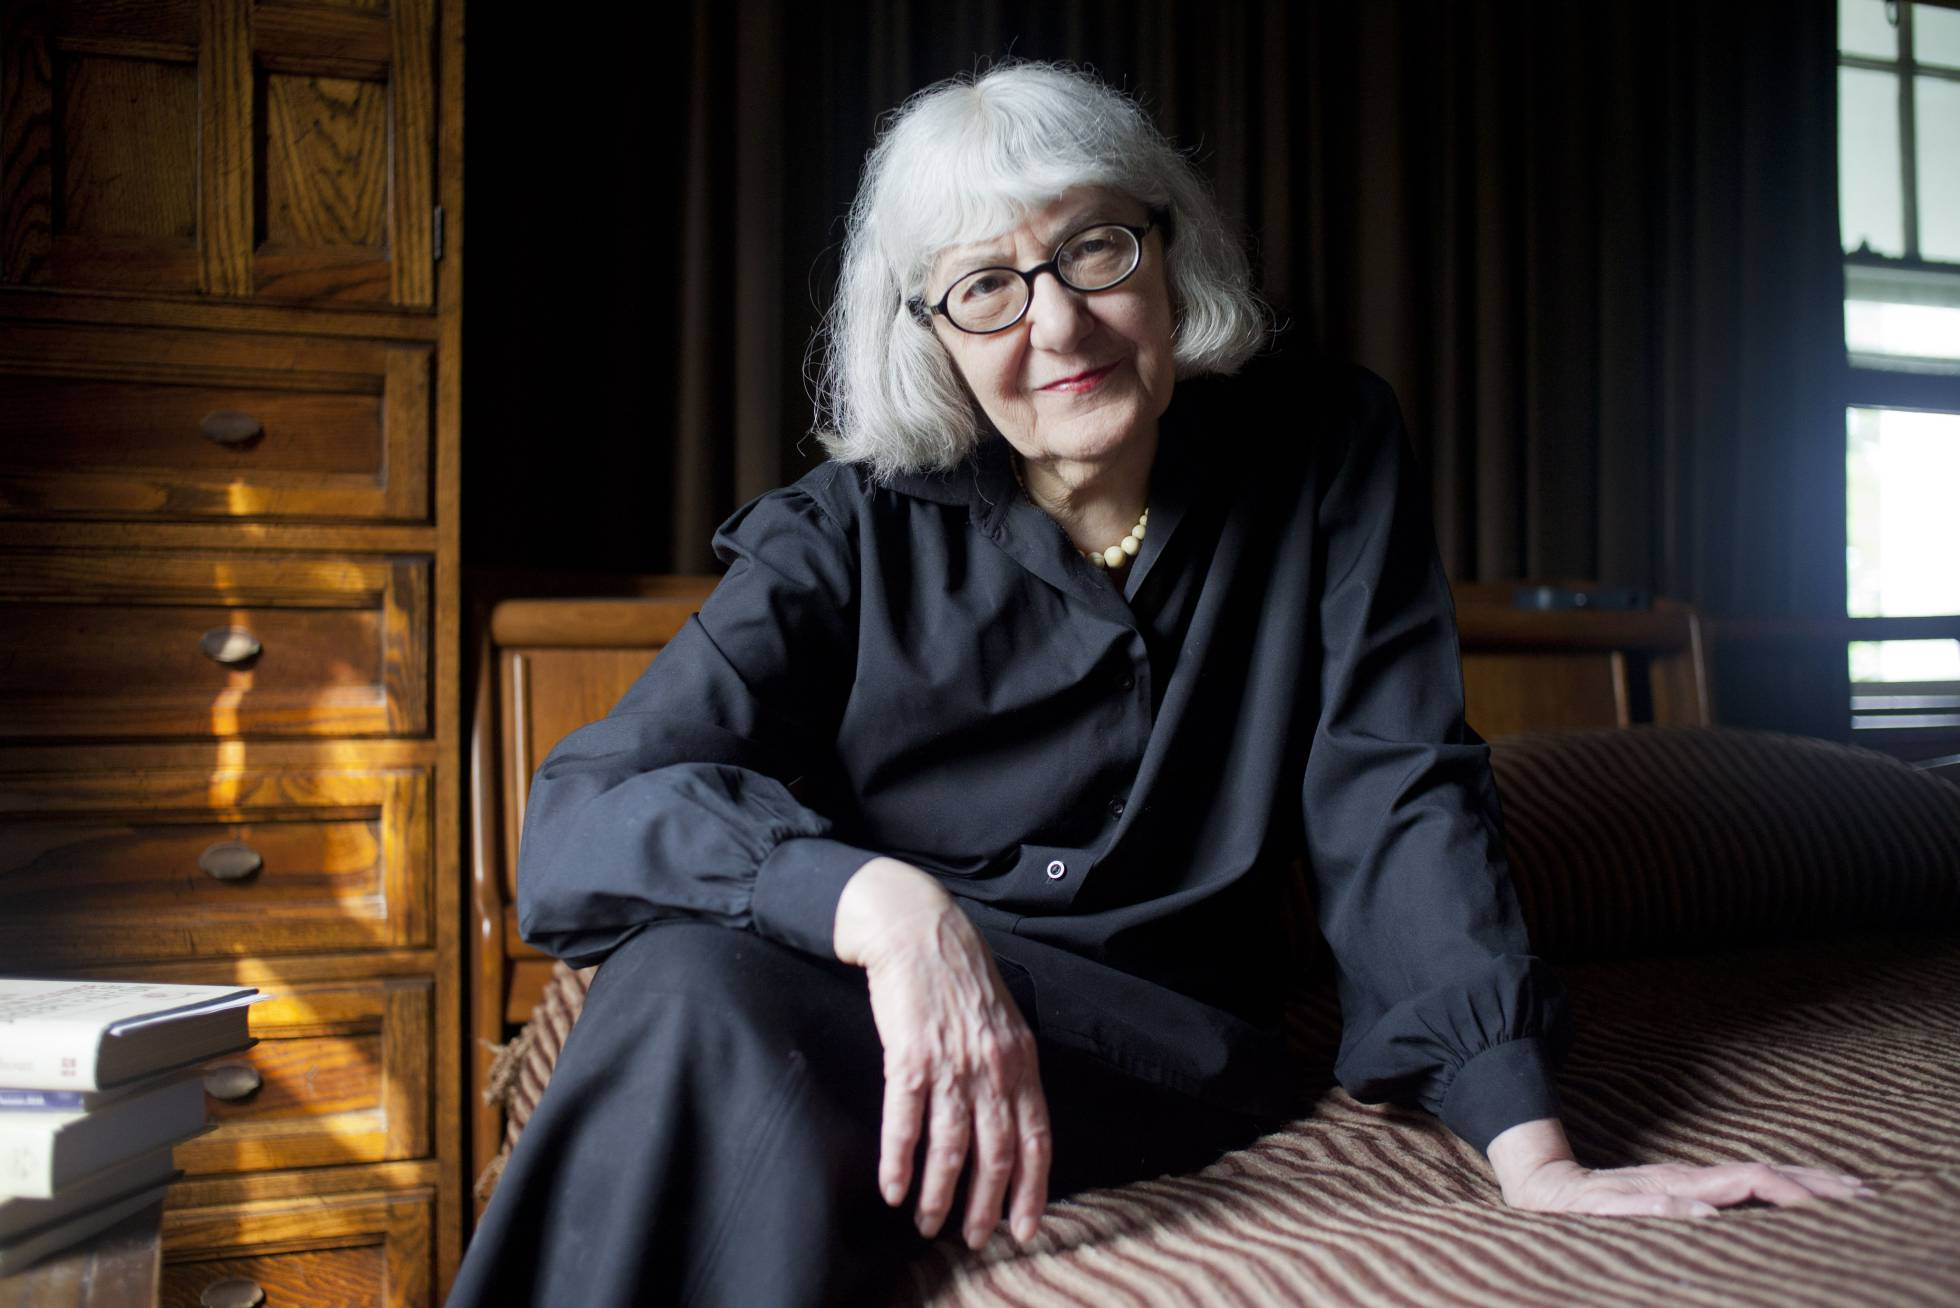 a biography of cynthia ozick an american story writer Recipient of the first rea award for the short story miss ozick strikes me as the best american writer to have emerged cynthia ozick is one of america's.